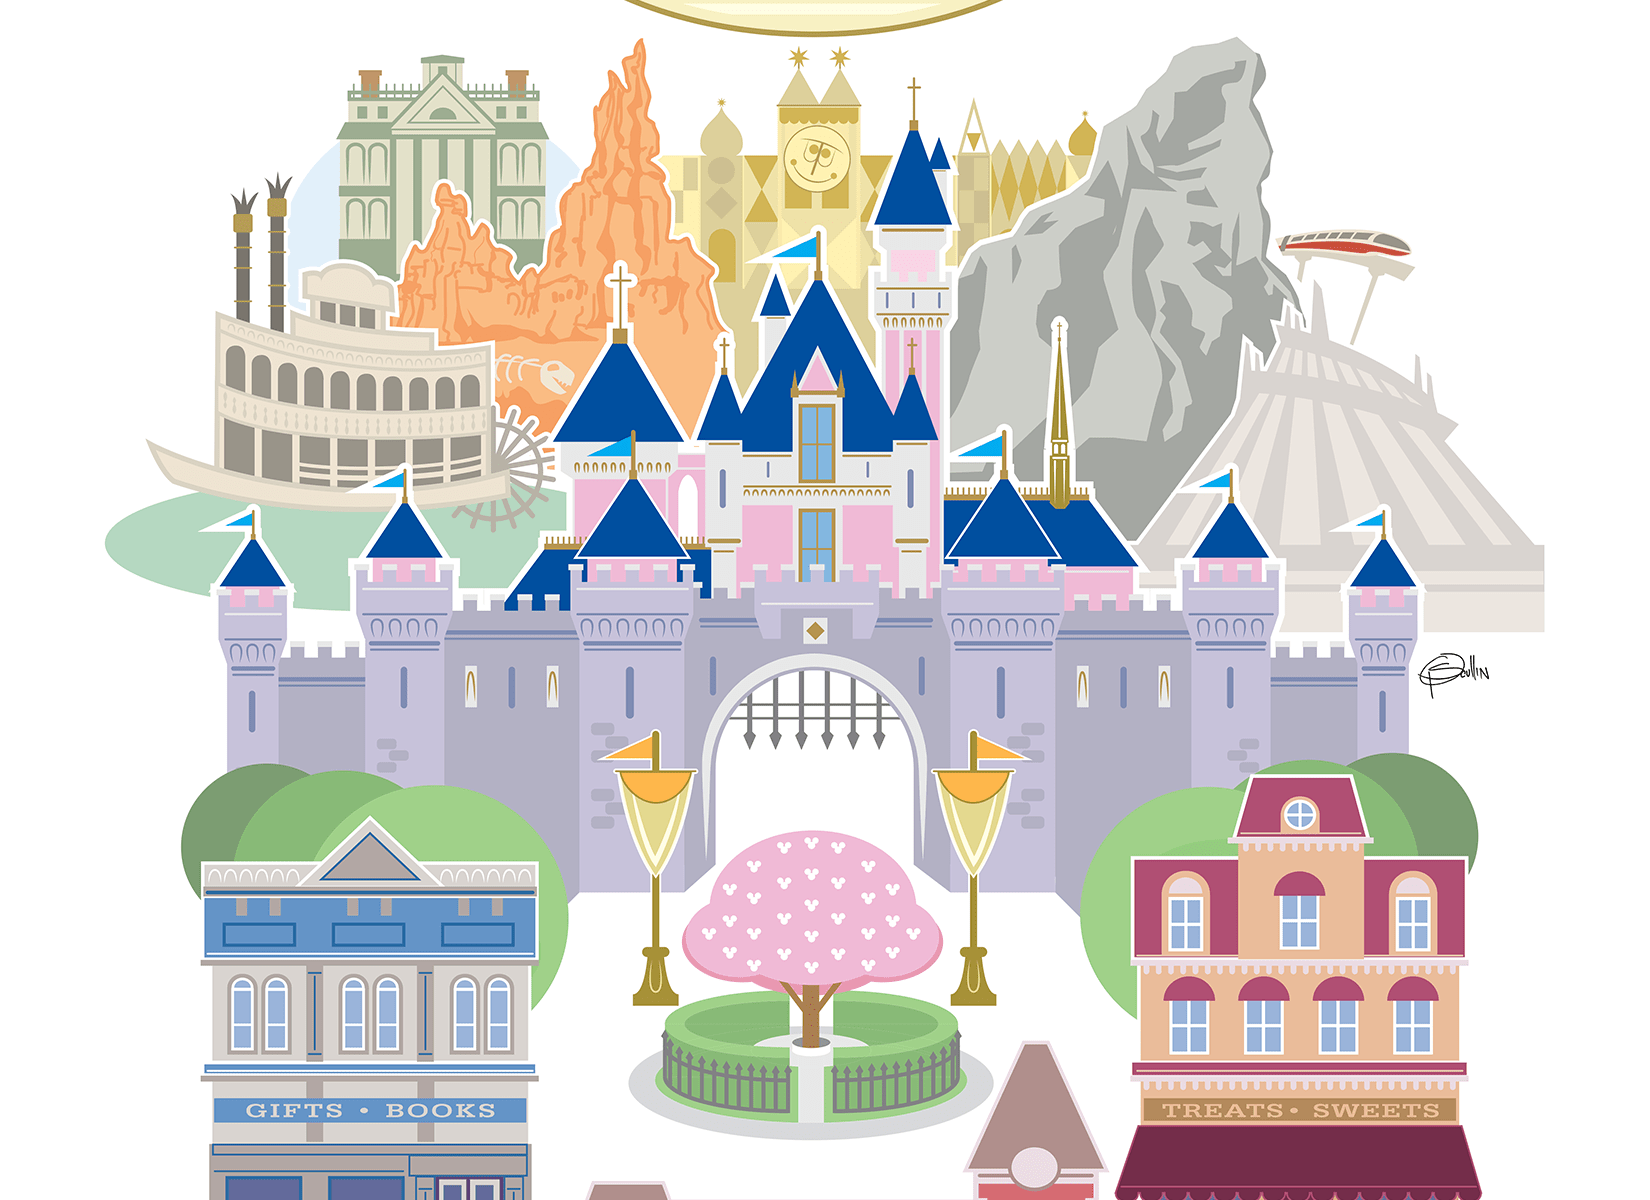 Happiest Place on Earth Disneyland 65th Anniversary Tribute Poster by Patrick Scullin